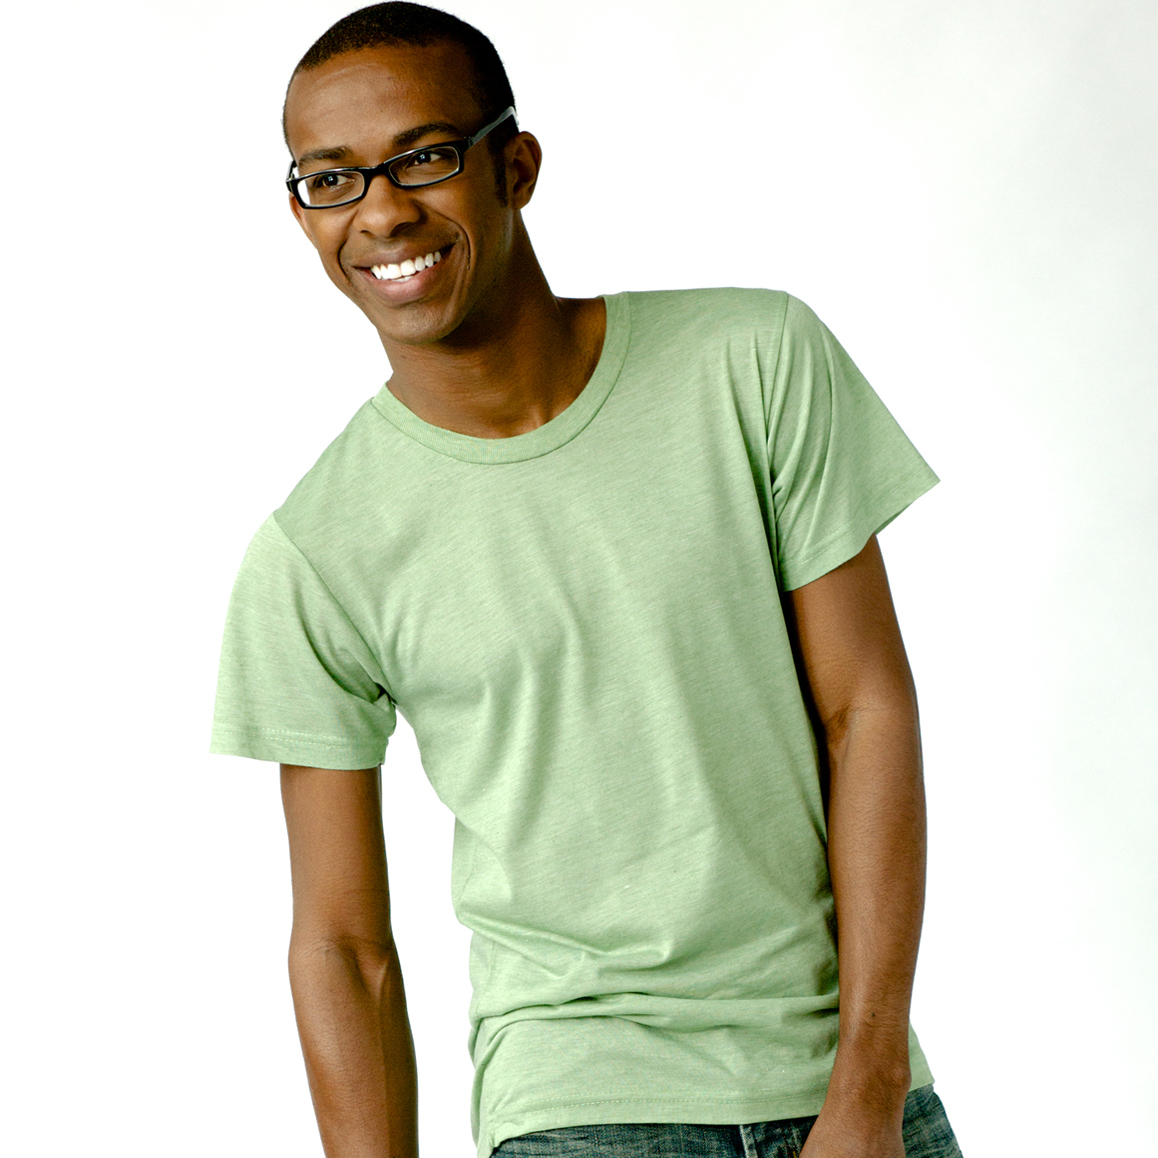 0241TC / TULTEX BLEND TEE   3.2 oz. 65% polyester / 35% cotton 40/1's fine knit jersey, side seamed, self-fabric collar, taped neck, double-needle sleeve and bottom hem, features a Tear Anywhere Label.      COLOR OPTIONS